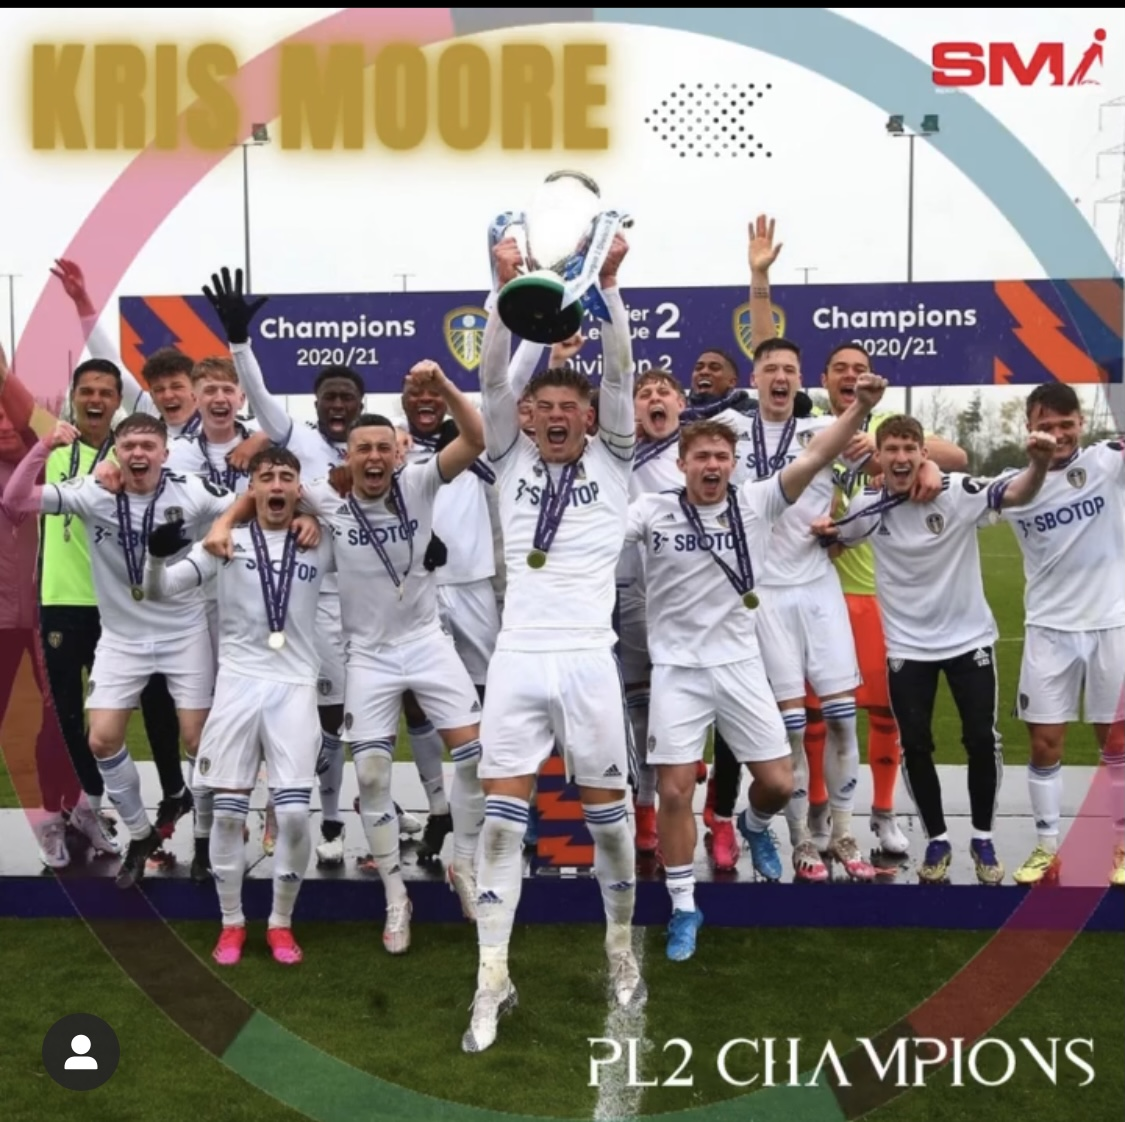 Kris Moore PL2 Champions with Leeds United